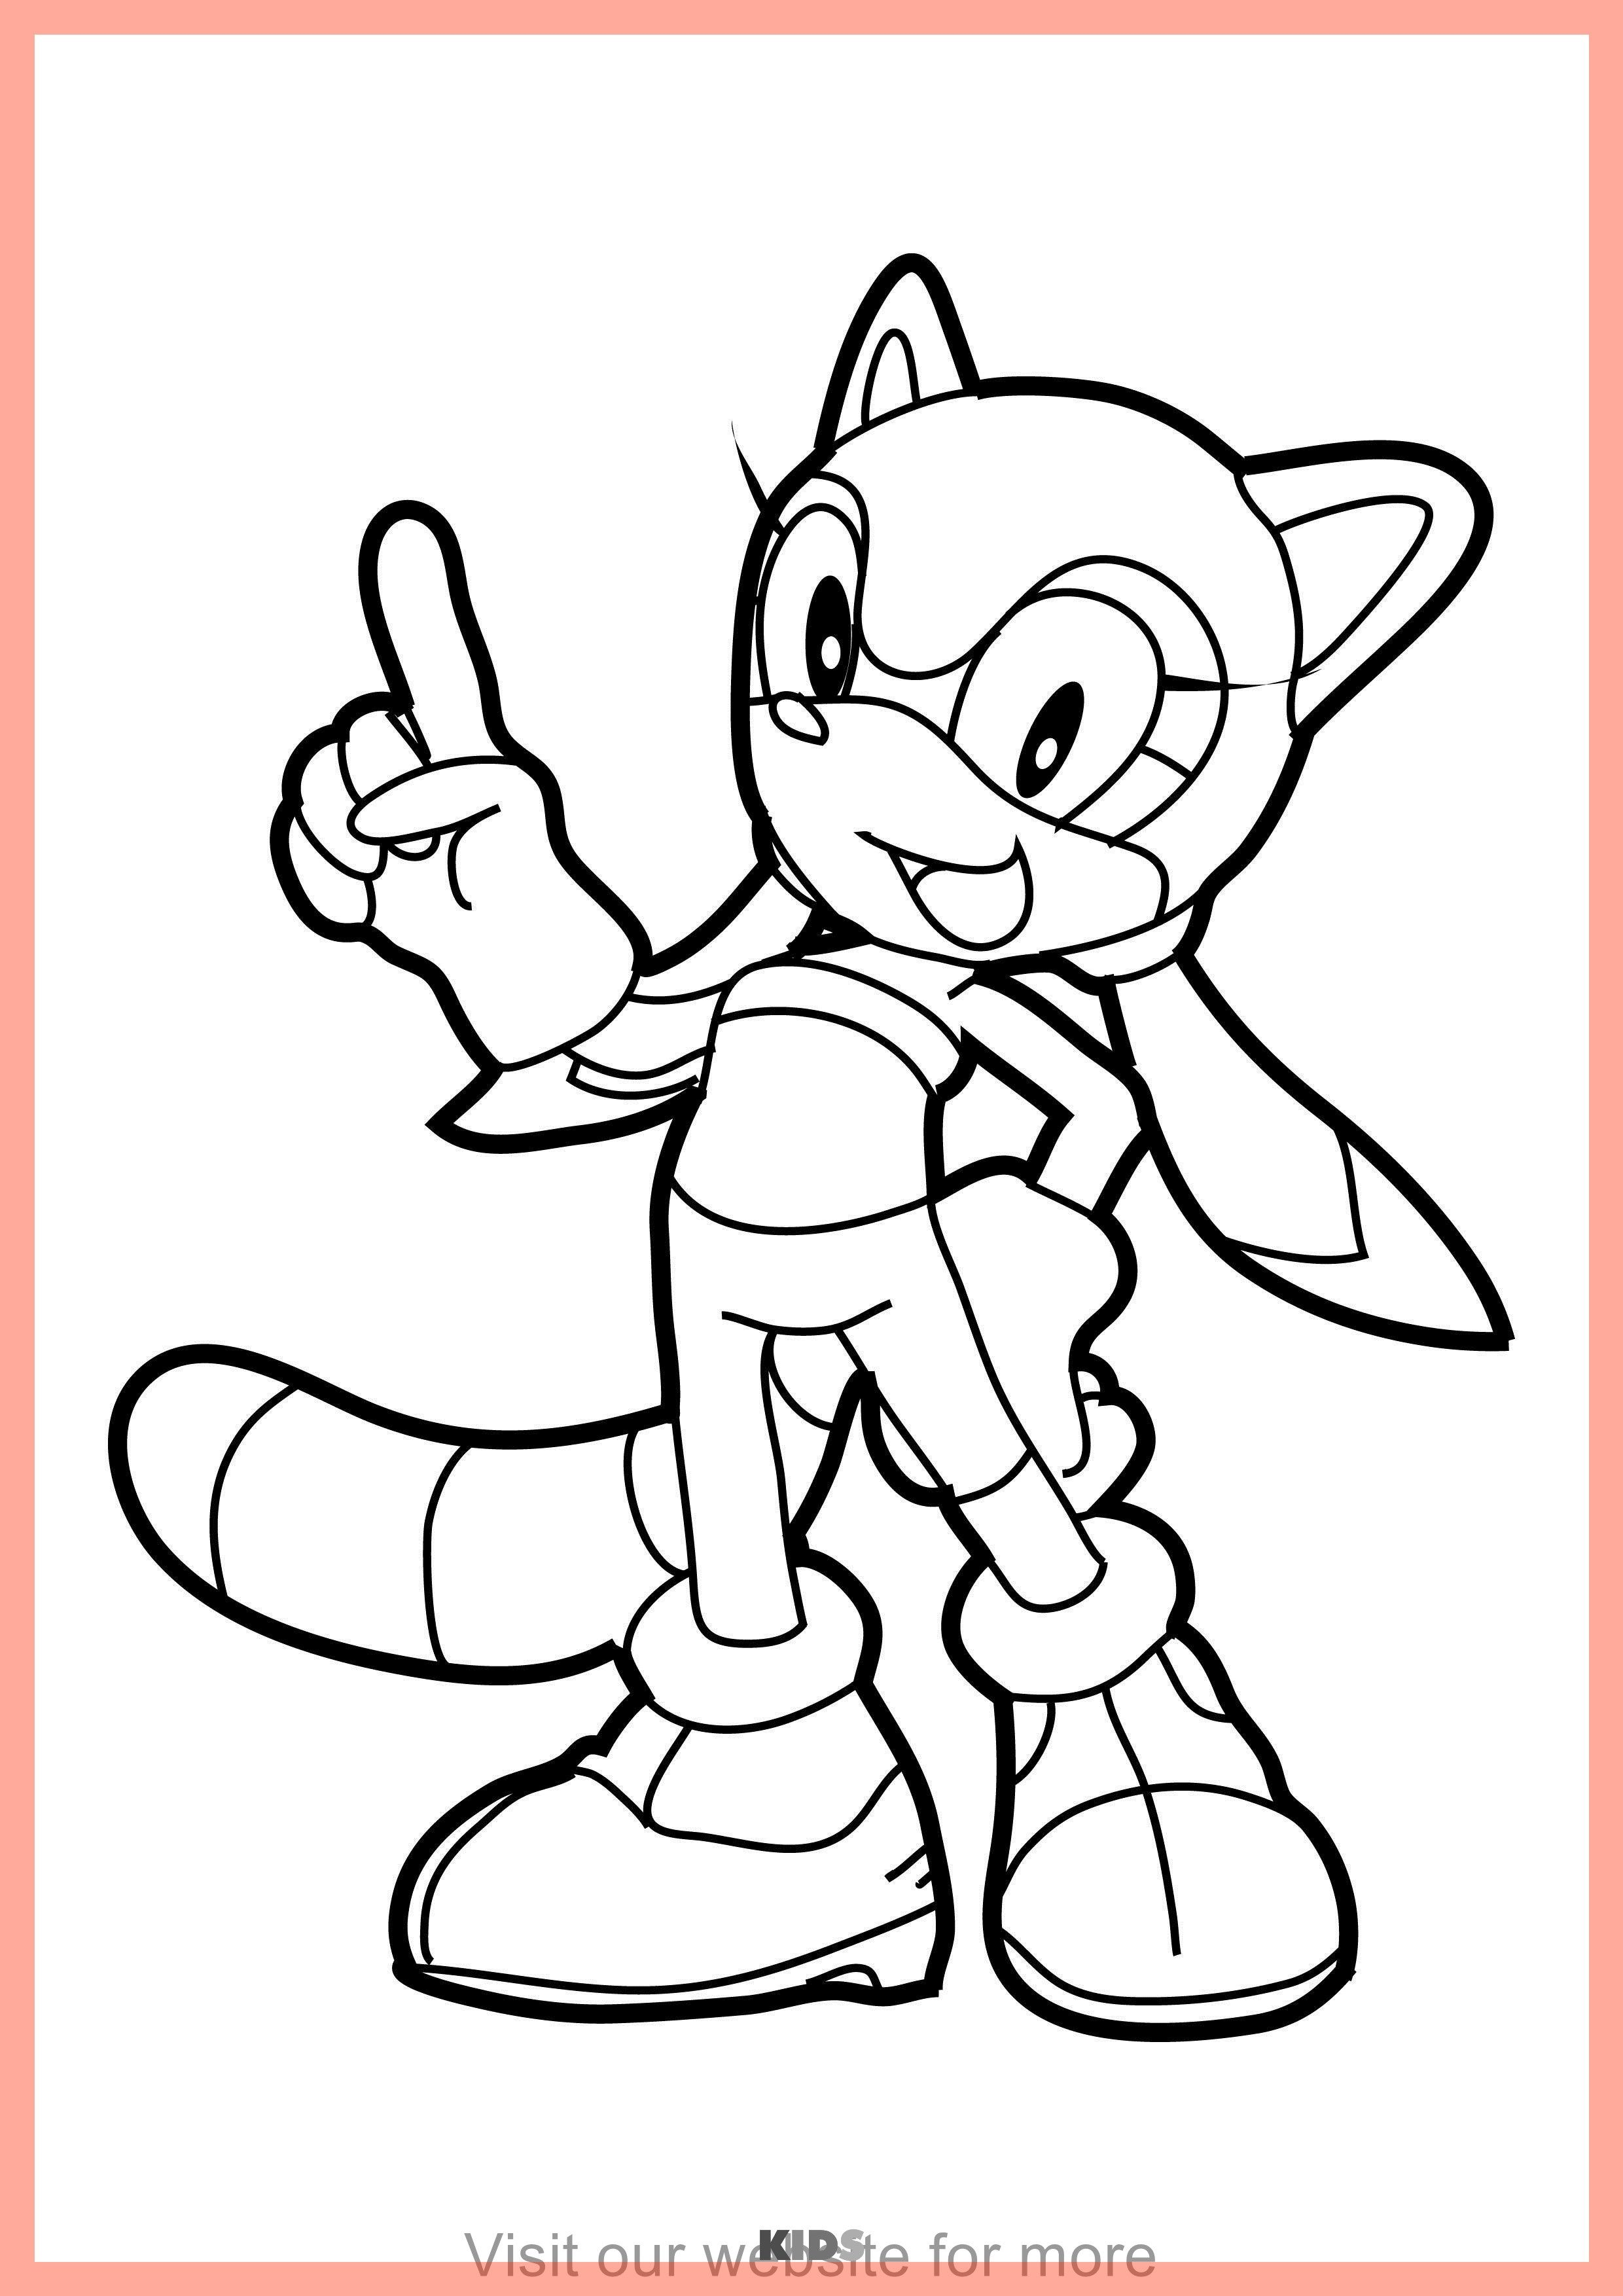 Sonic The Hedgehog And Tails Coloring Pages - PeepsBurgh